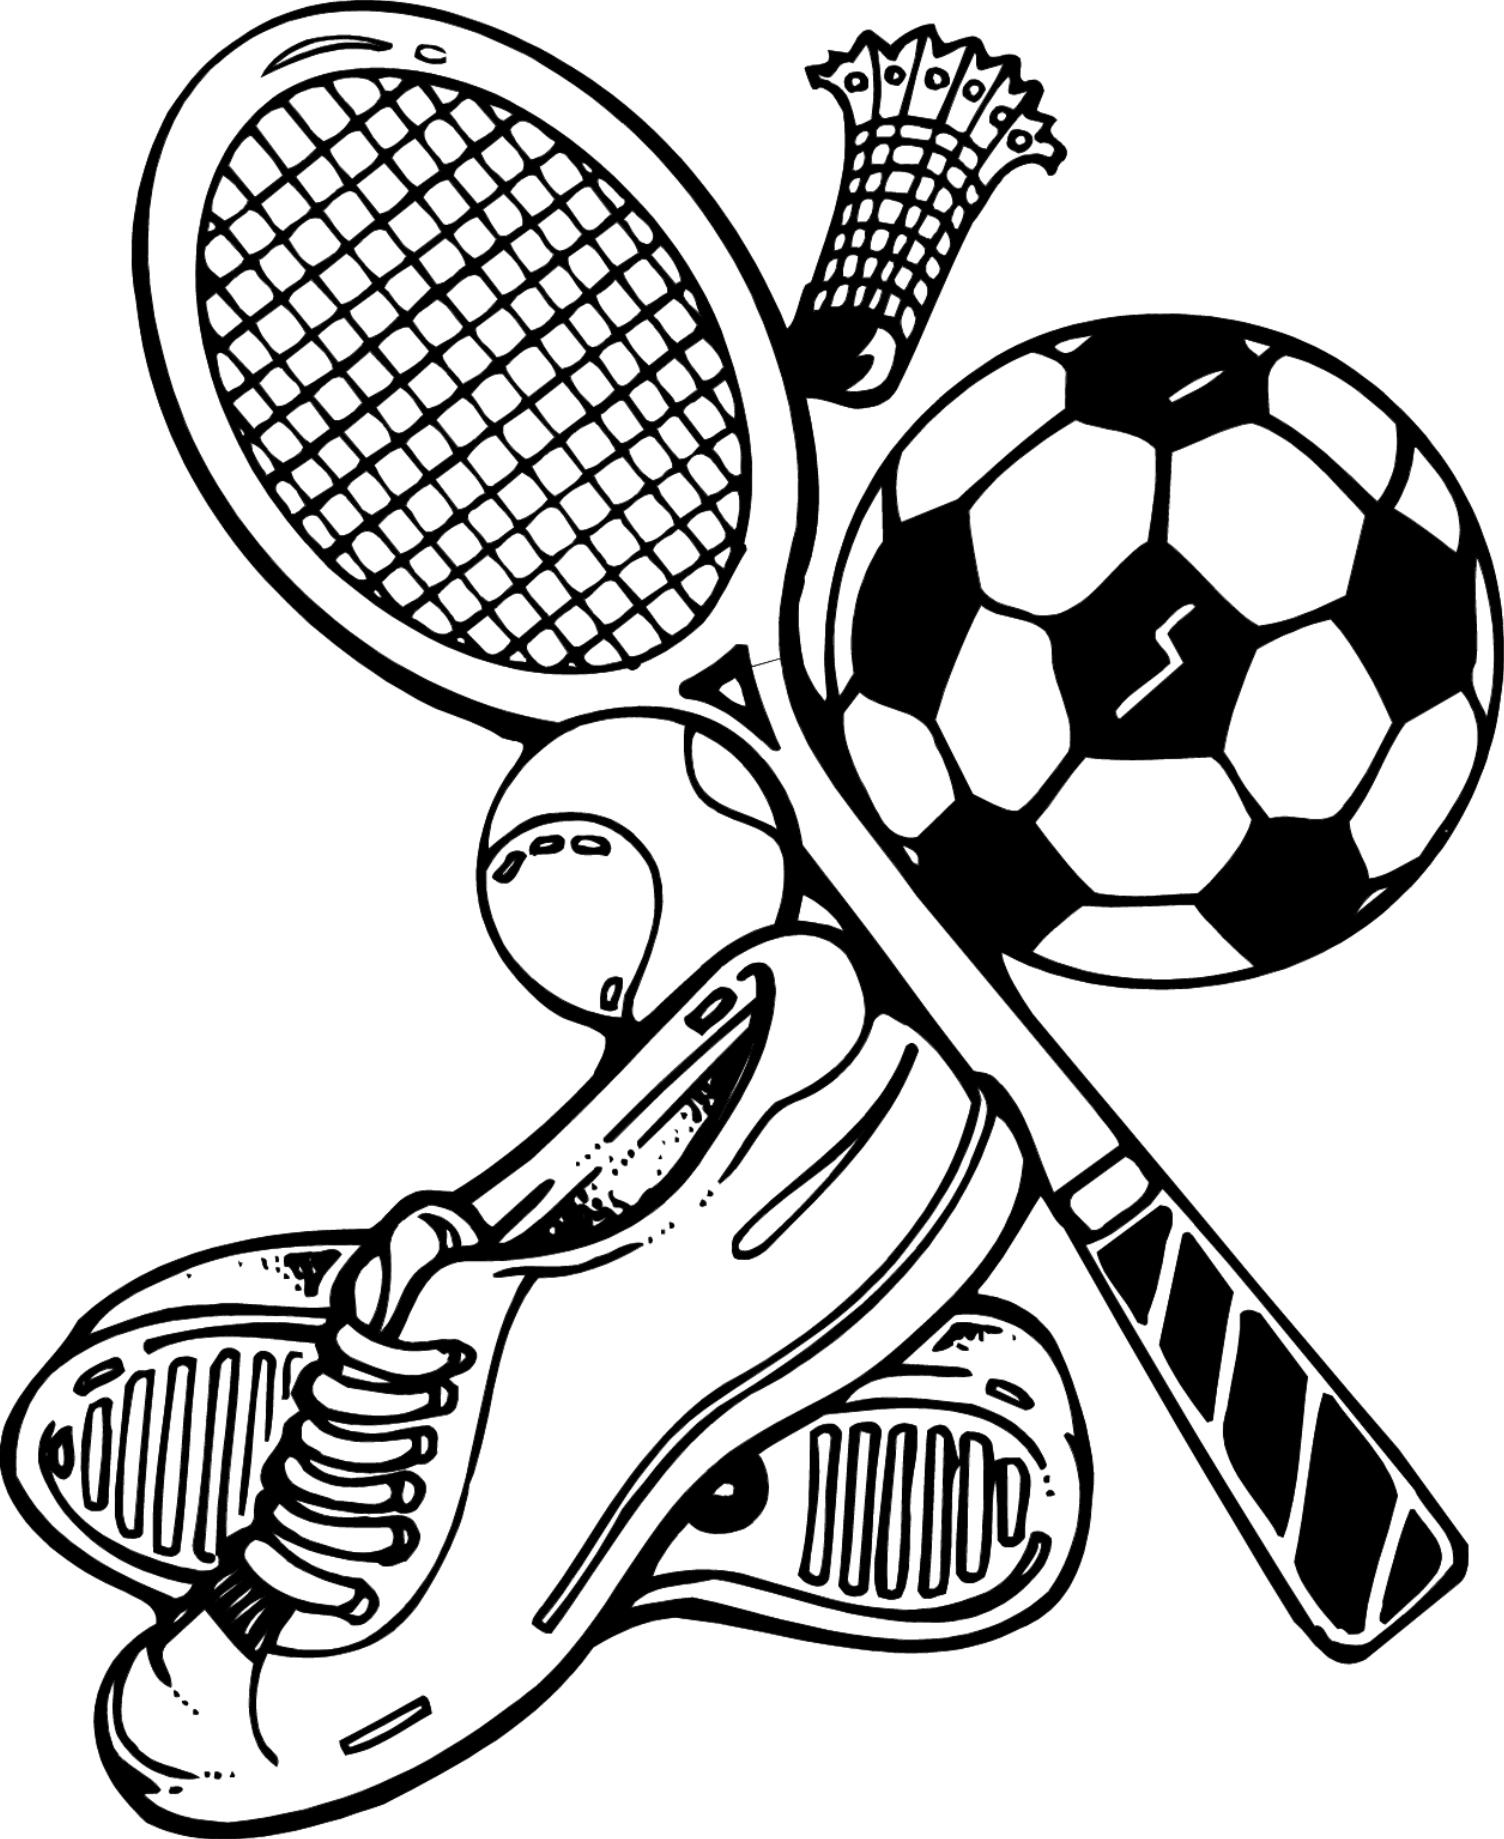 sports coloring pages for kid - photo#19